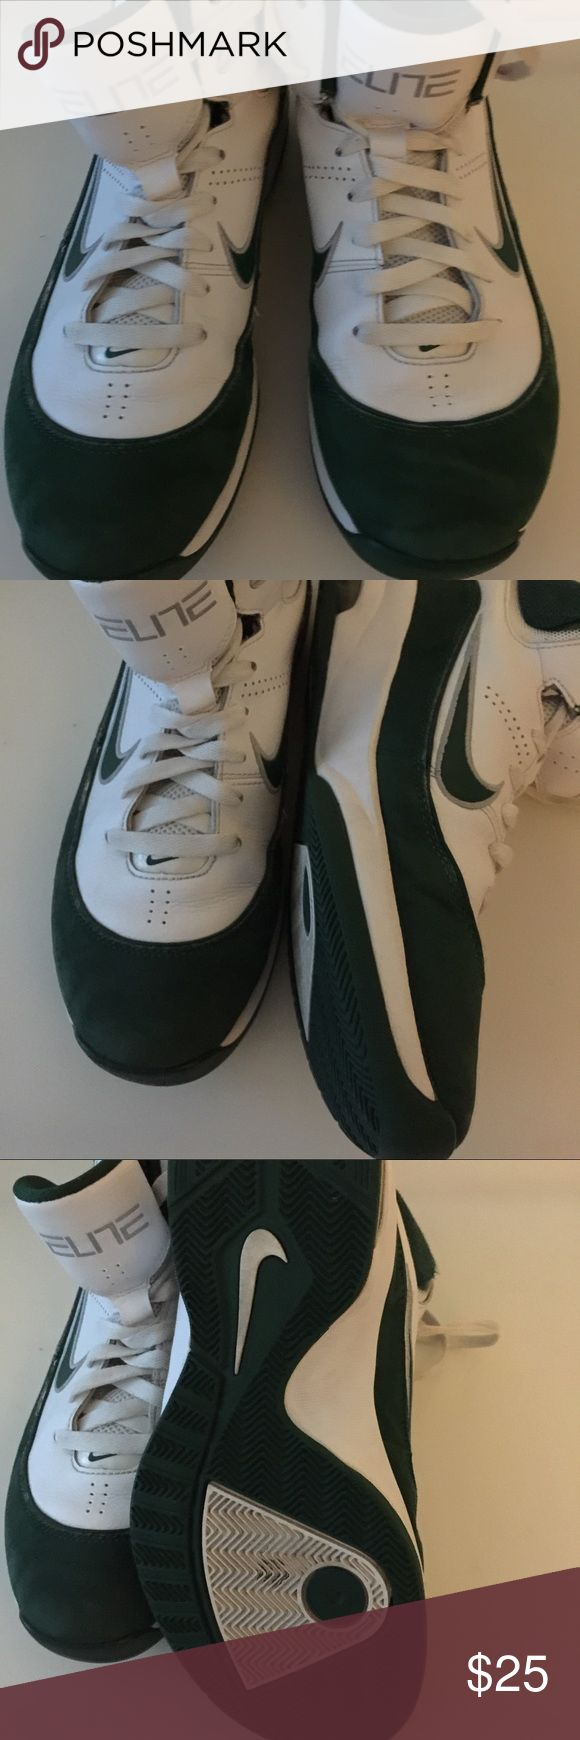 ‼️Closet Clearance ‼️ Nike Elite Sneakers Nike Elite High Top Athletic Tennis Shoes 454139-107 Green & White in excellent preowned condition. Please take a look at pictures before making a purchase. Size:8  Color:Green & white. Nike Shoes Sneakers